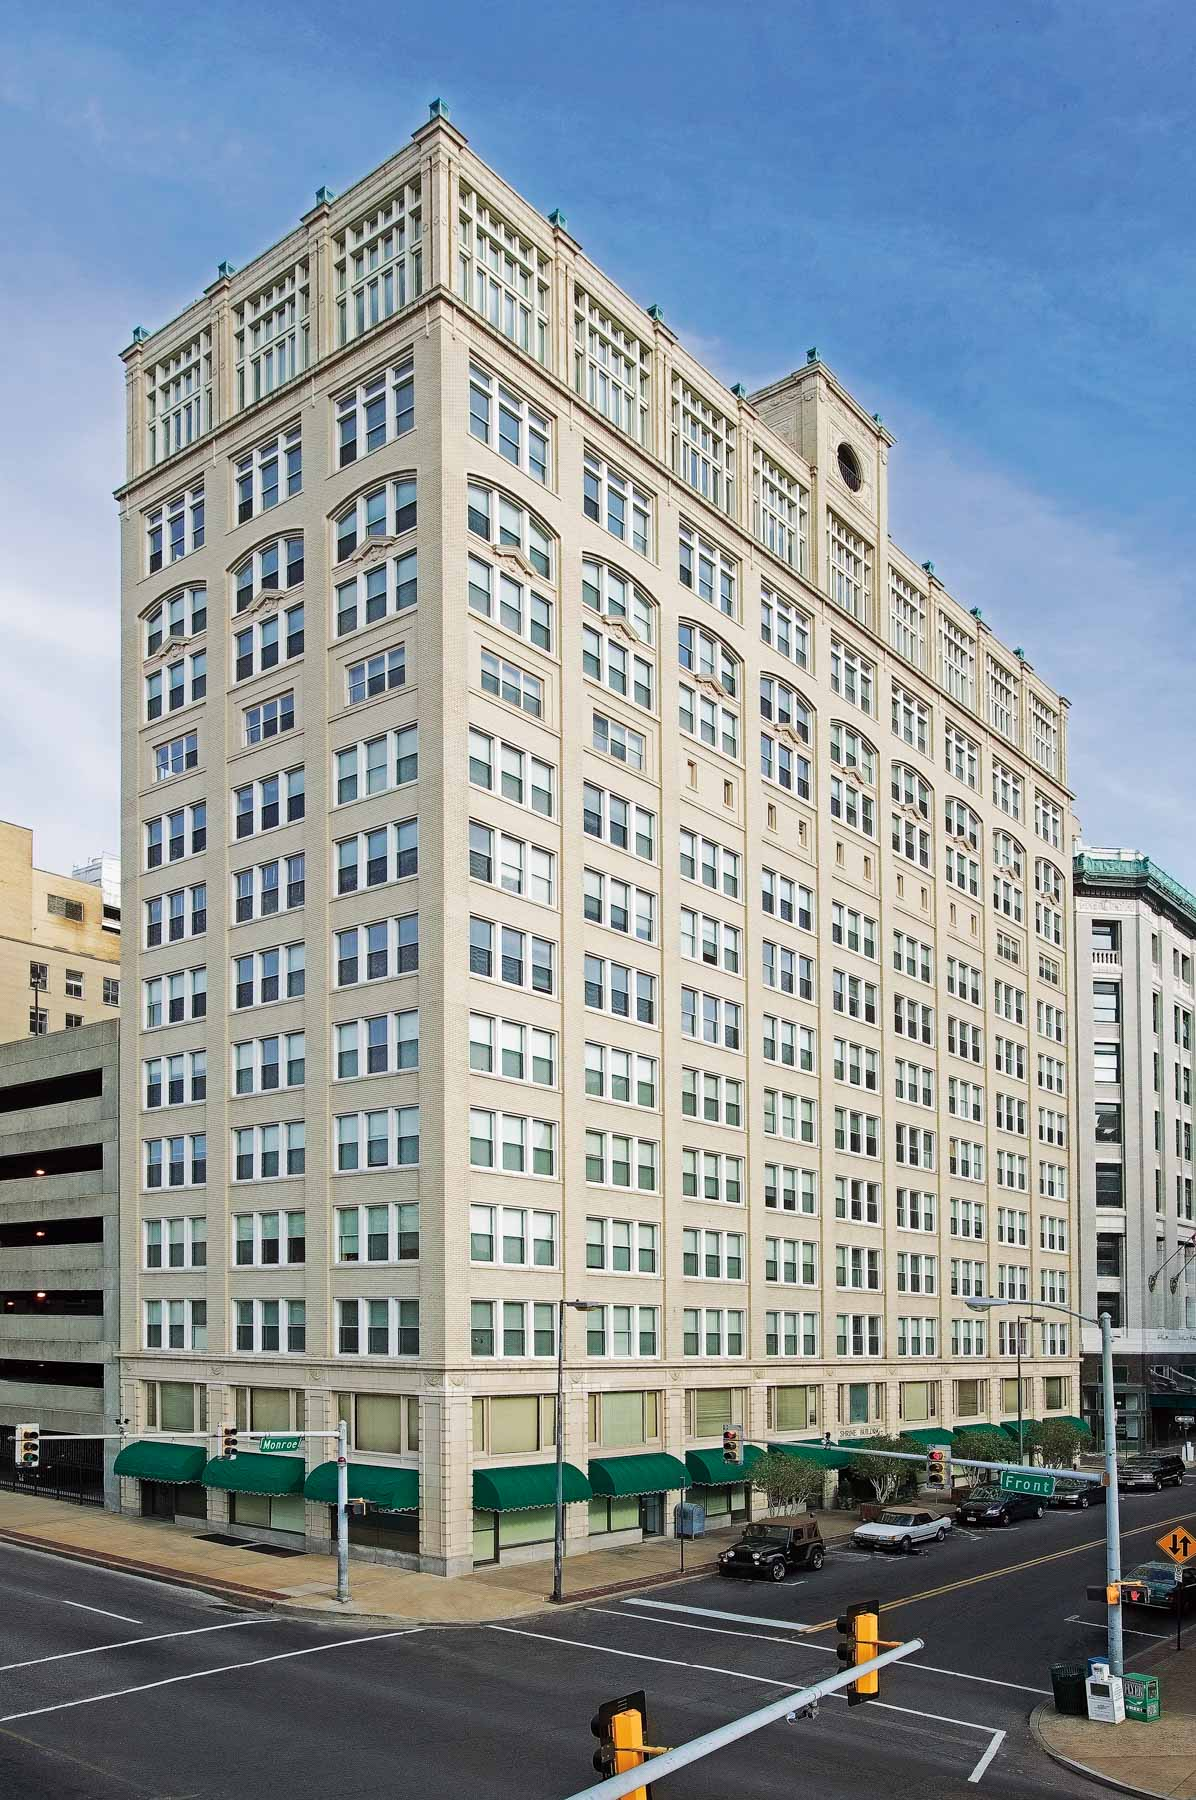 Photography of Shrine Building at 66 Monroe to provide 2 views to serve as basis for a pen-and-ink or Heliogramme rendering. The images are for use by Red Deluxe for Henry Turley to be used only in regional advertising and direct mail for up to one year.